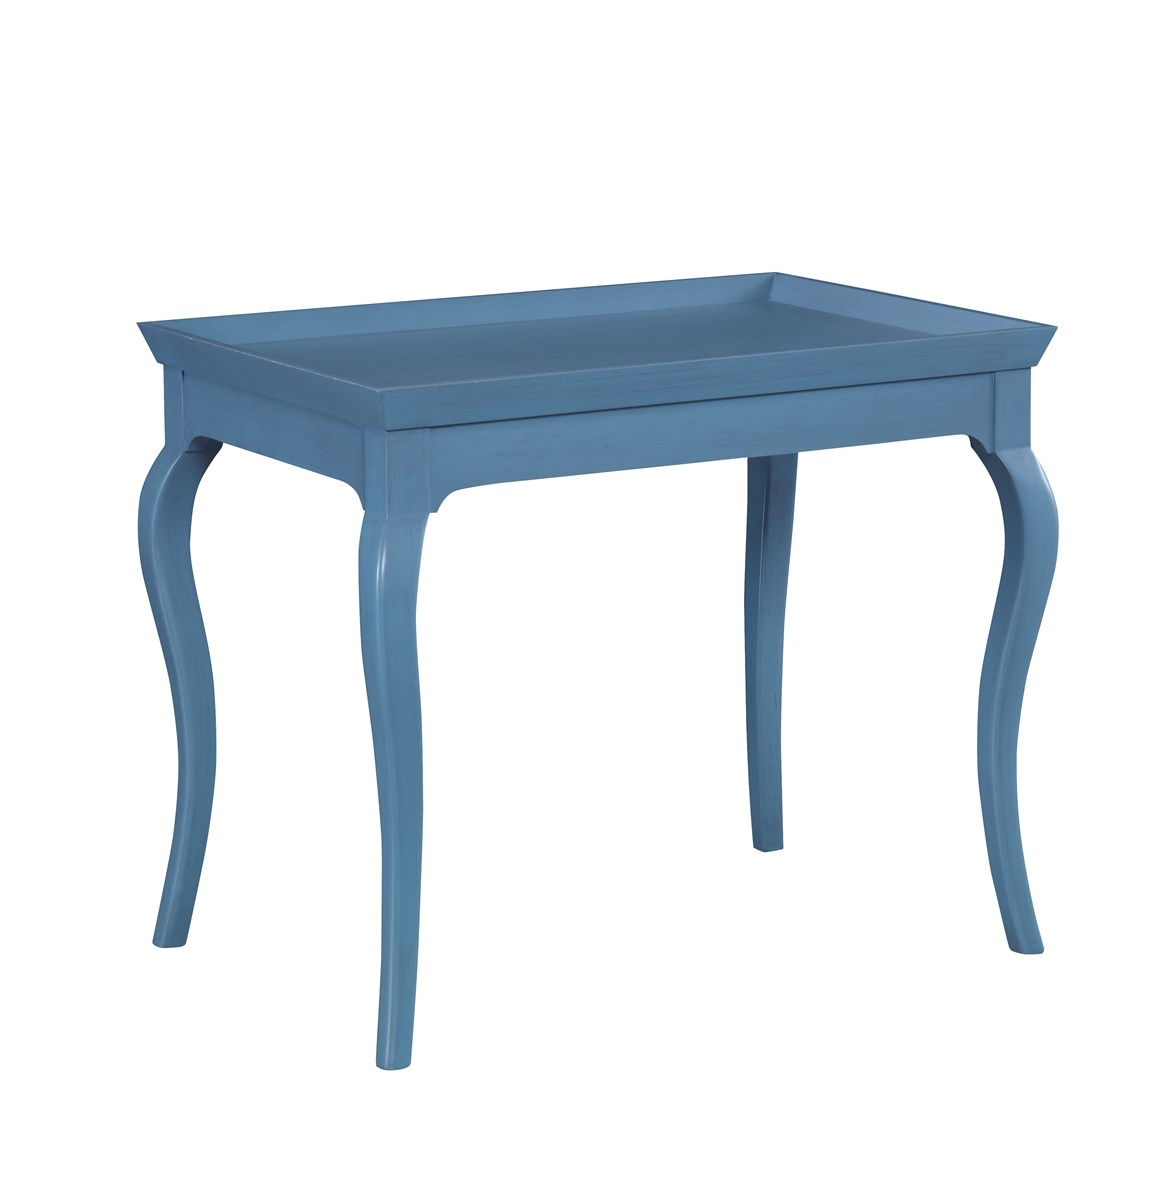 Posey Side Table MDS20225-42 - COLLECTION - Our Styles ...